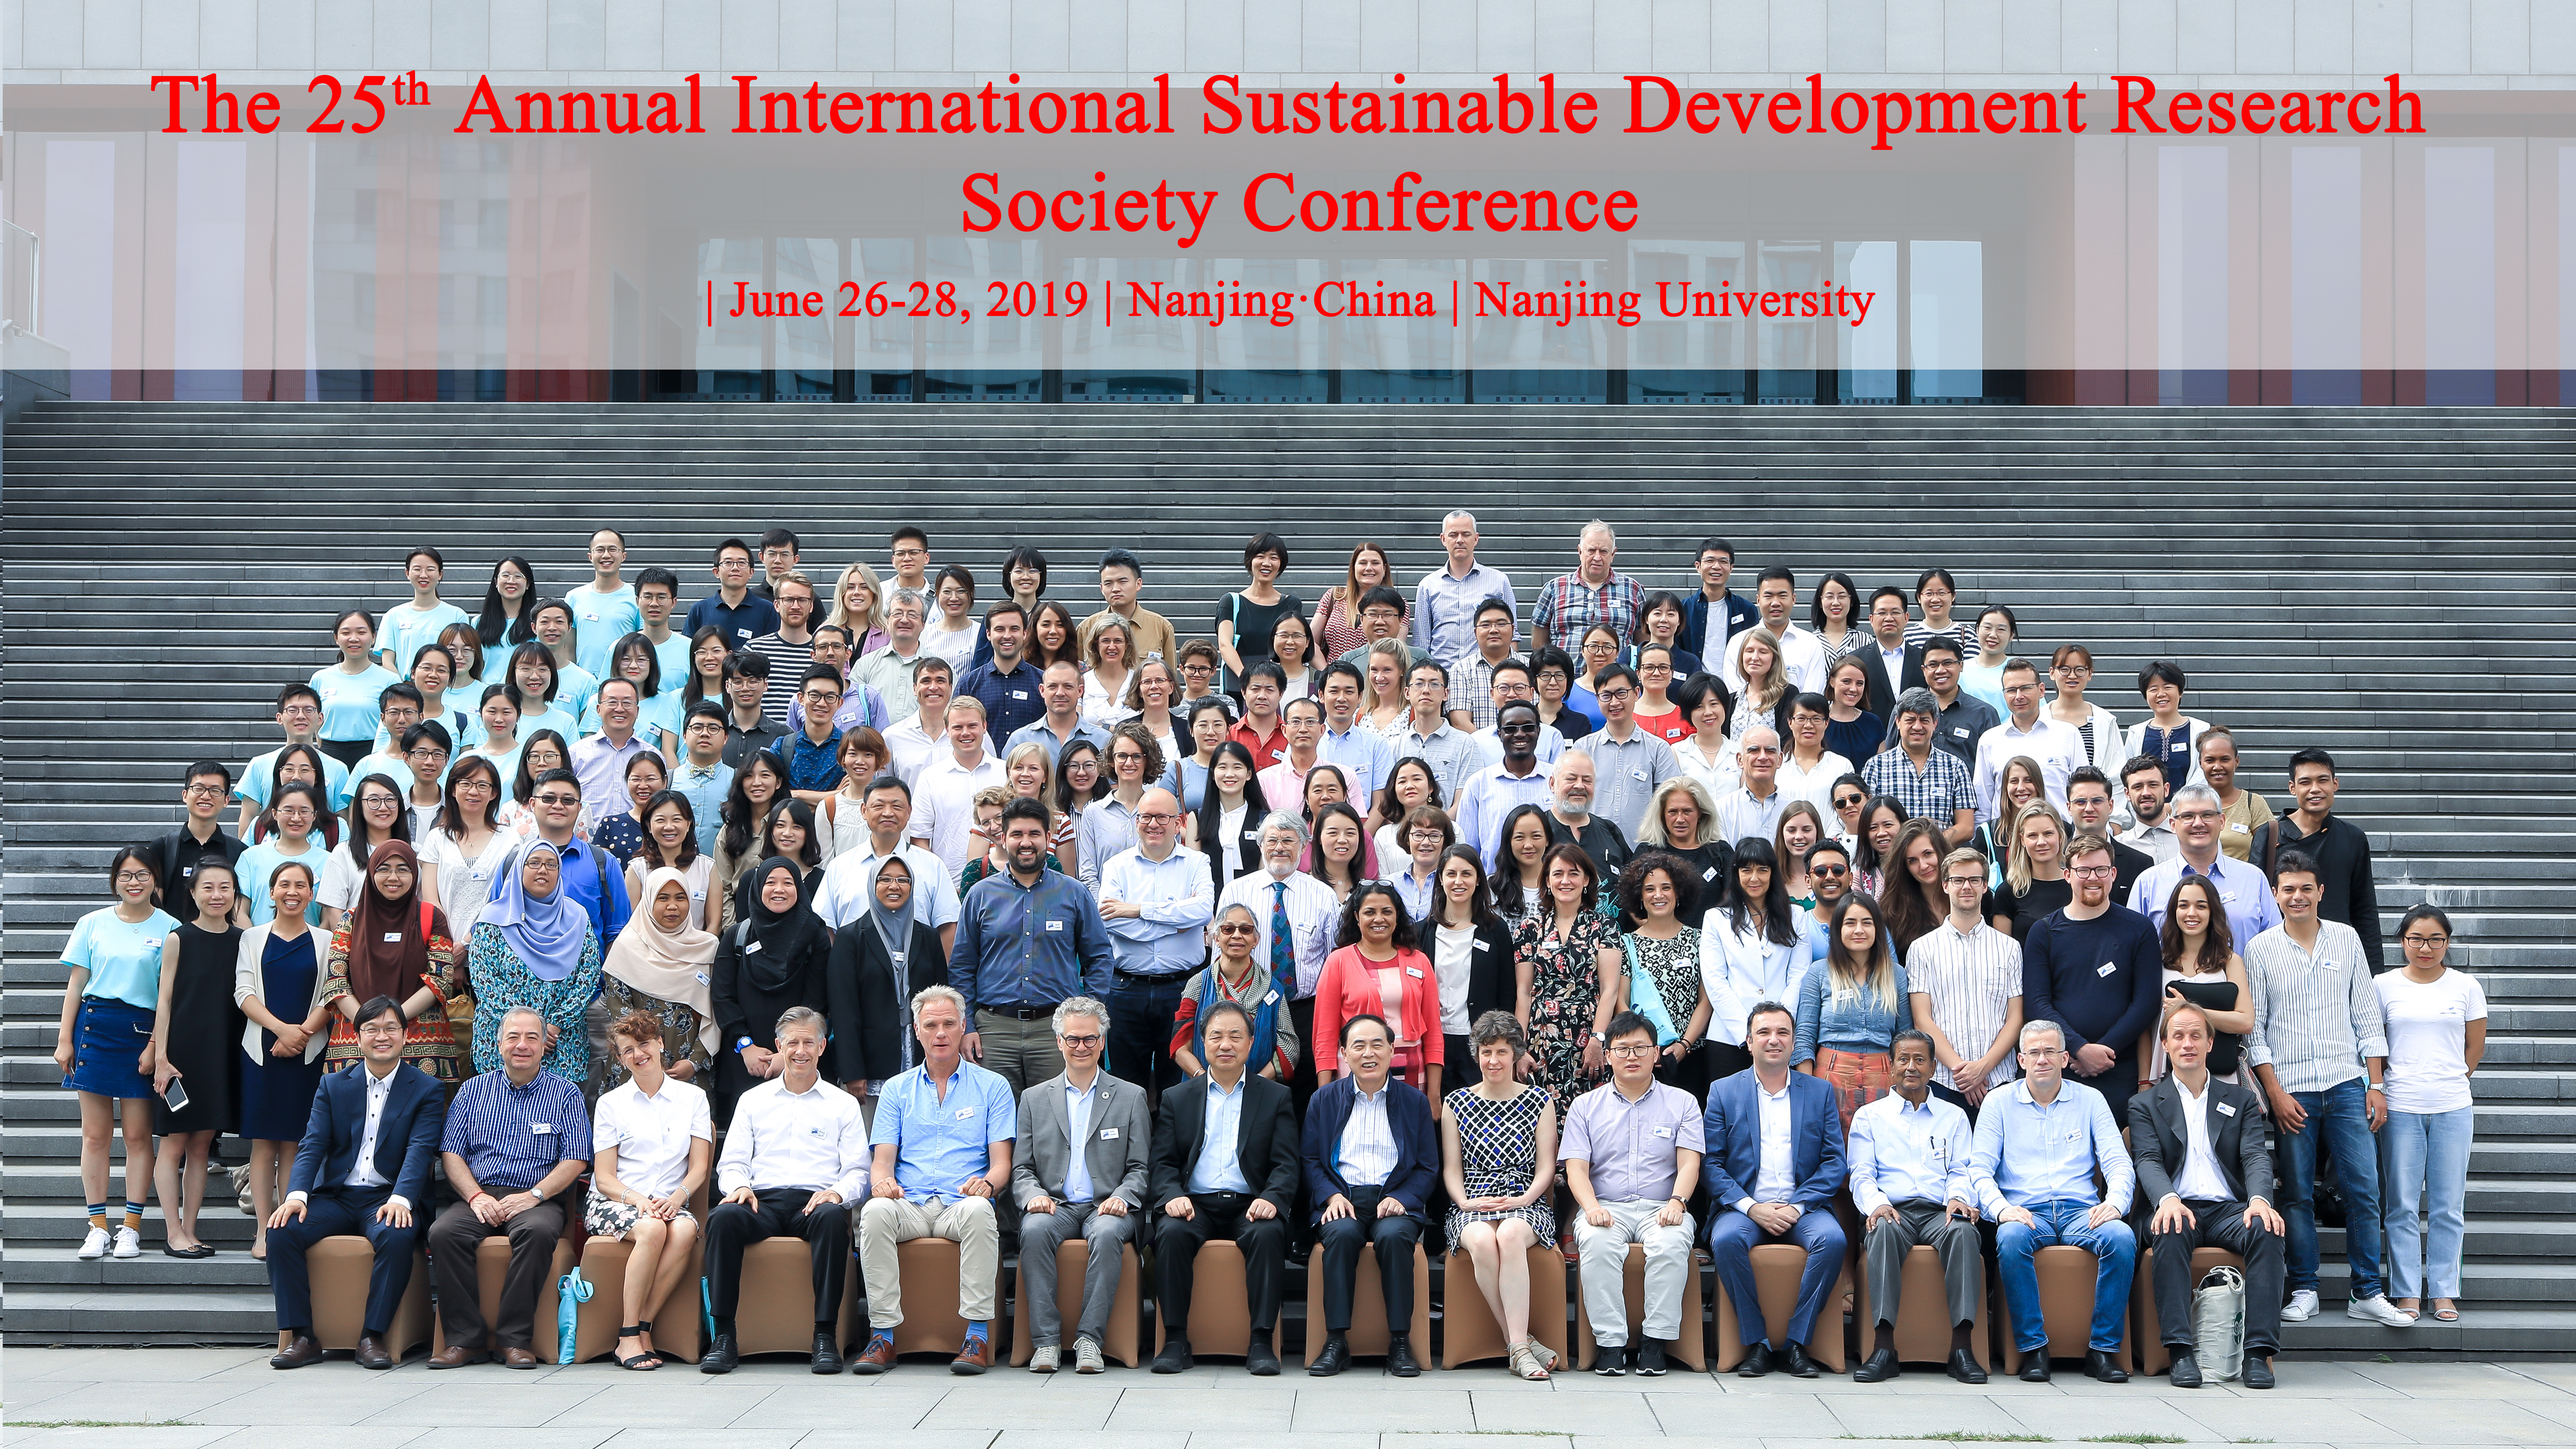 ISDRS Conference 2019 China – 26/28th June | ISDRS